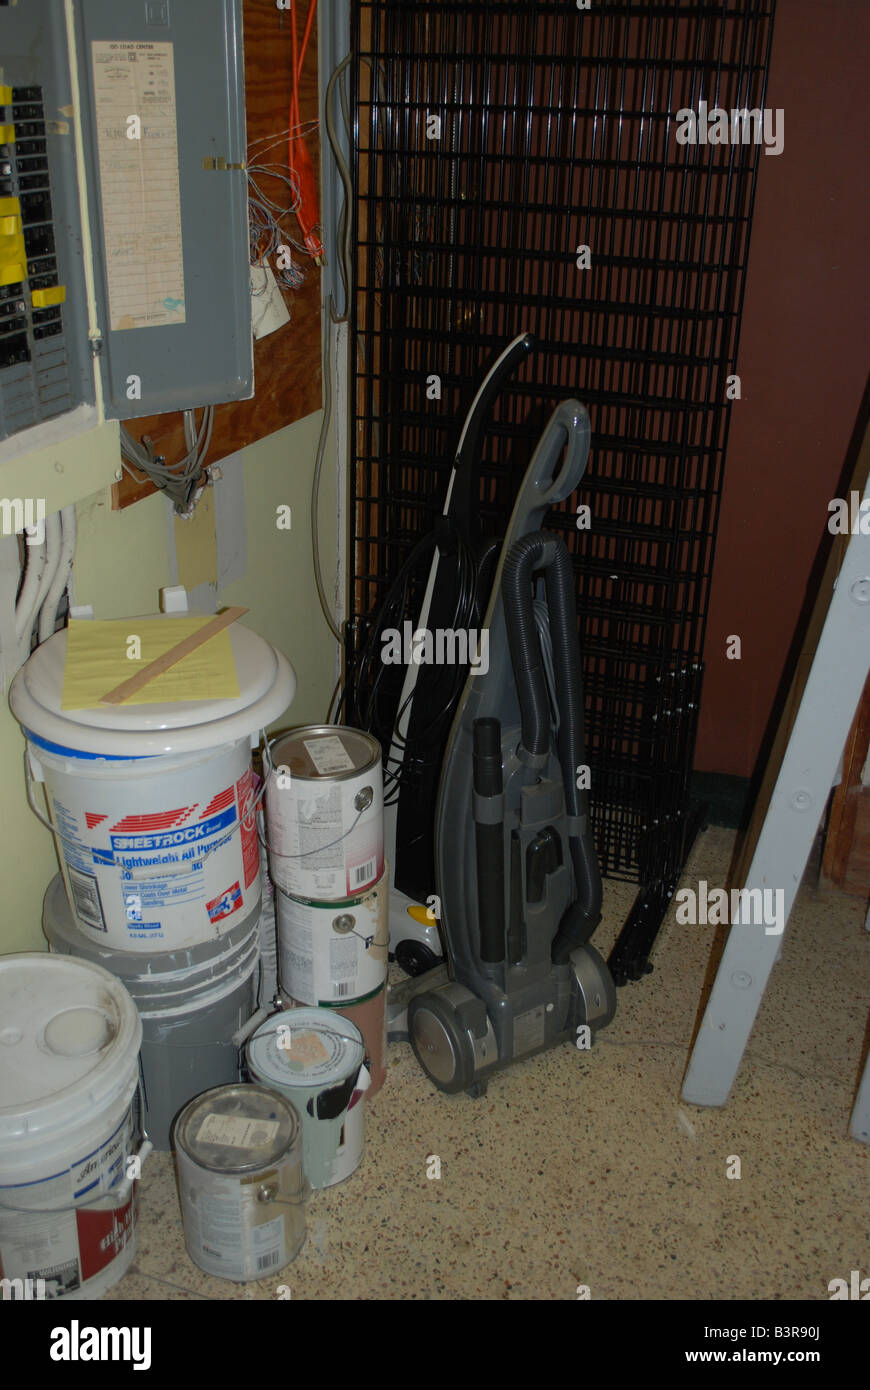 Supplies In A Janitoru0027s Closet   Stock Image